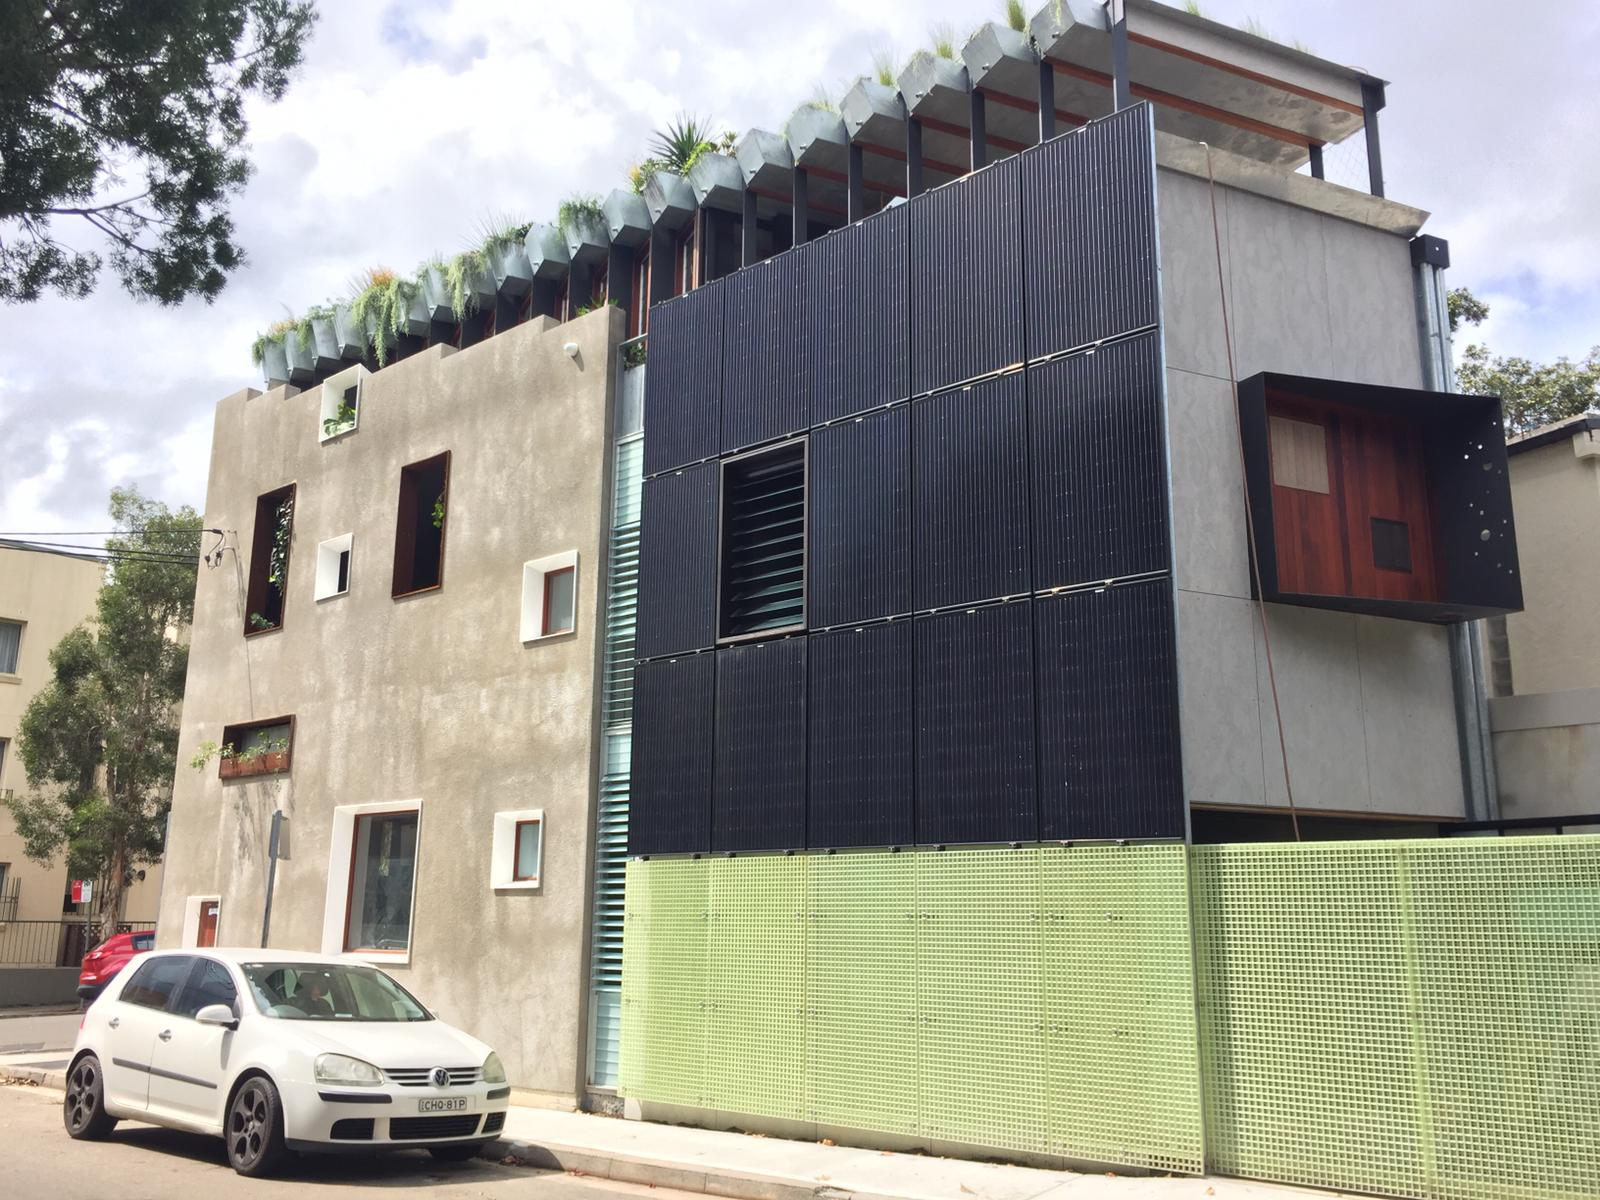 Congratulations to Australia Wide Solar for winning the Solar Design and Installation Award for this BIPV System with WINAICO Full Black Panels